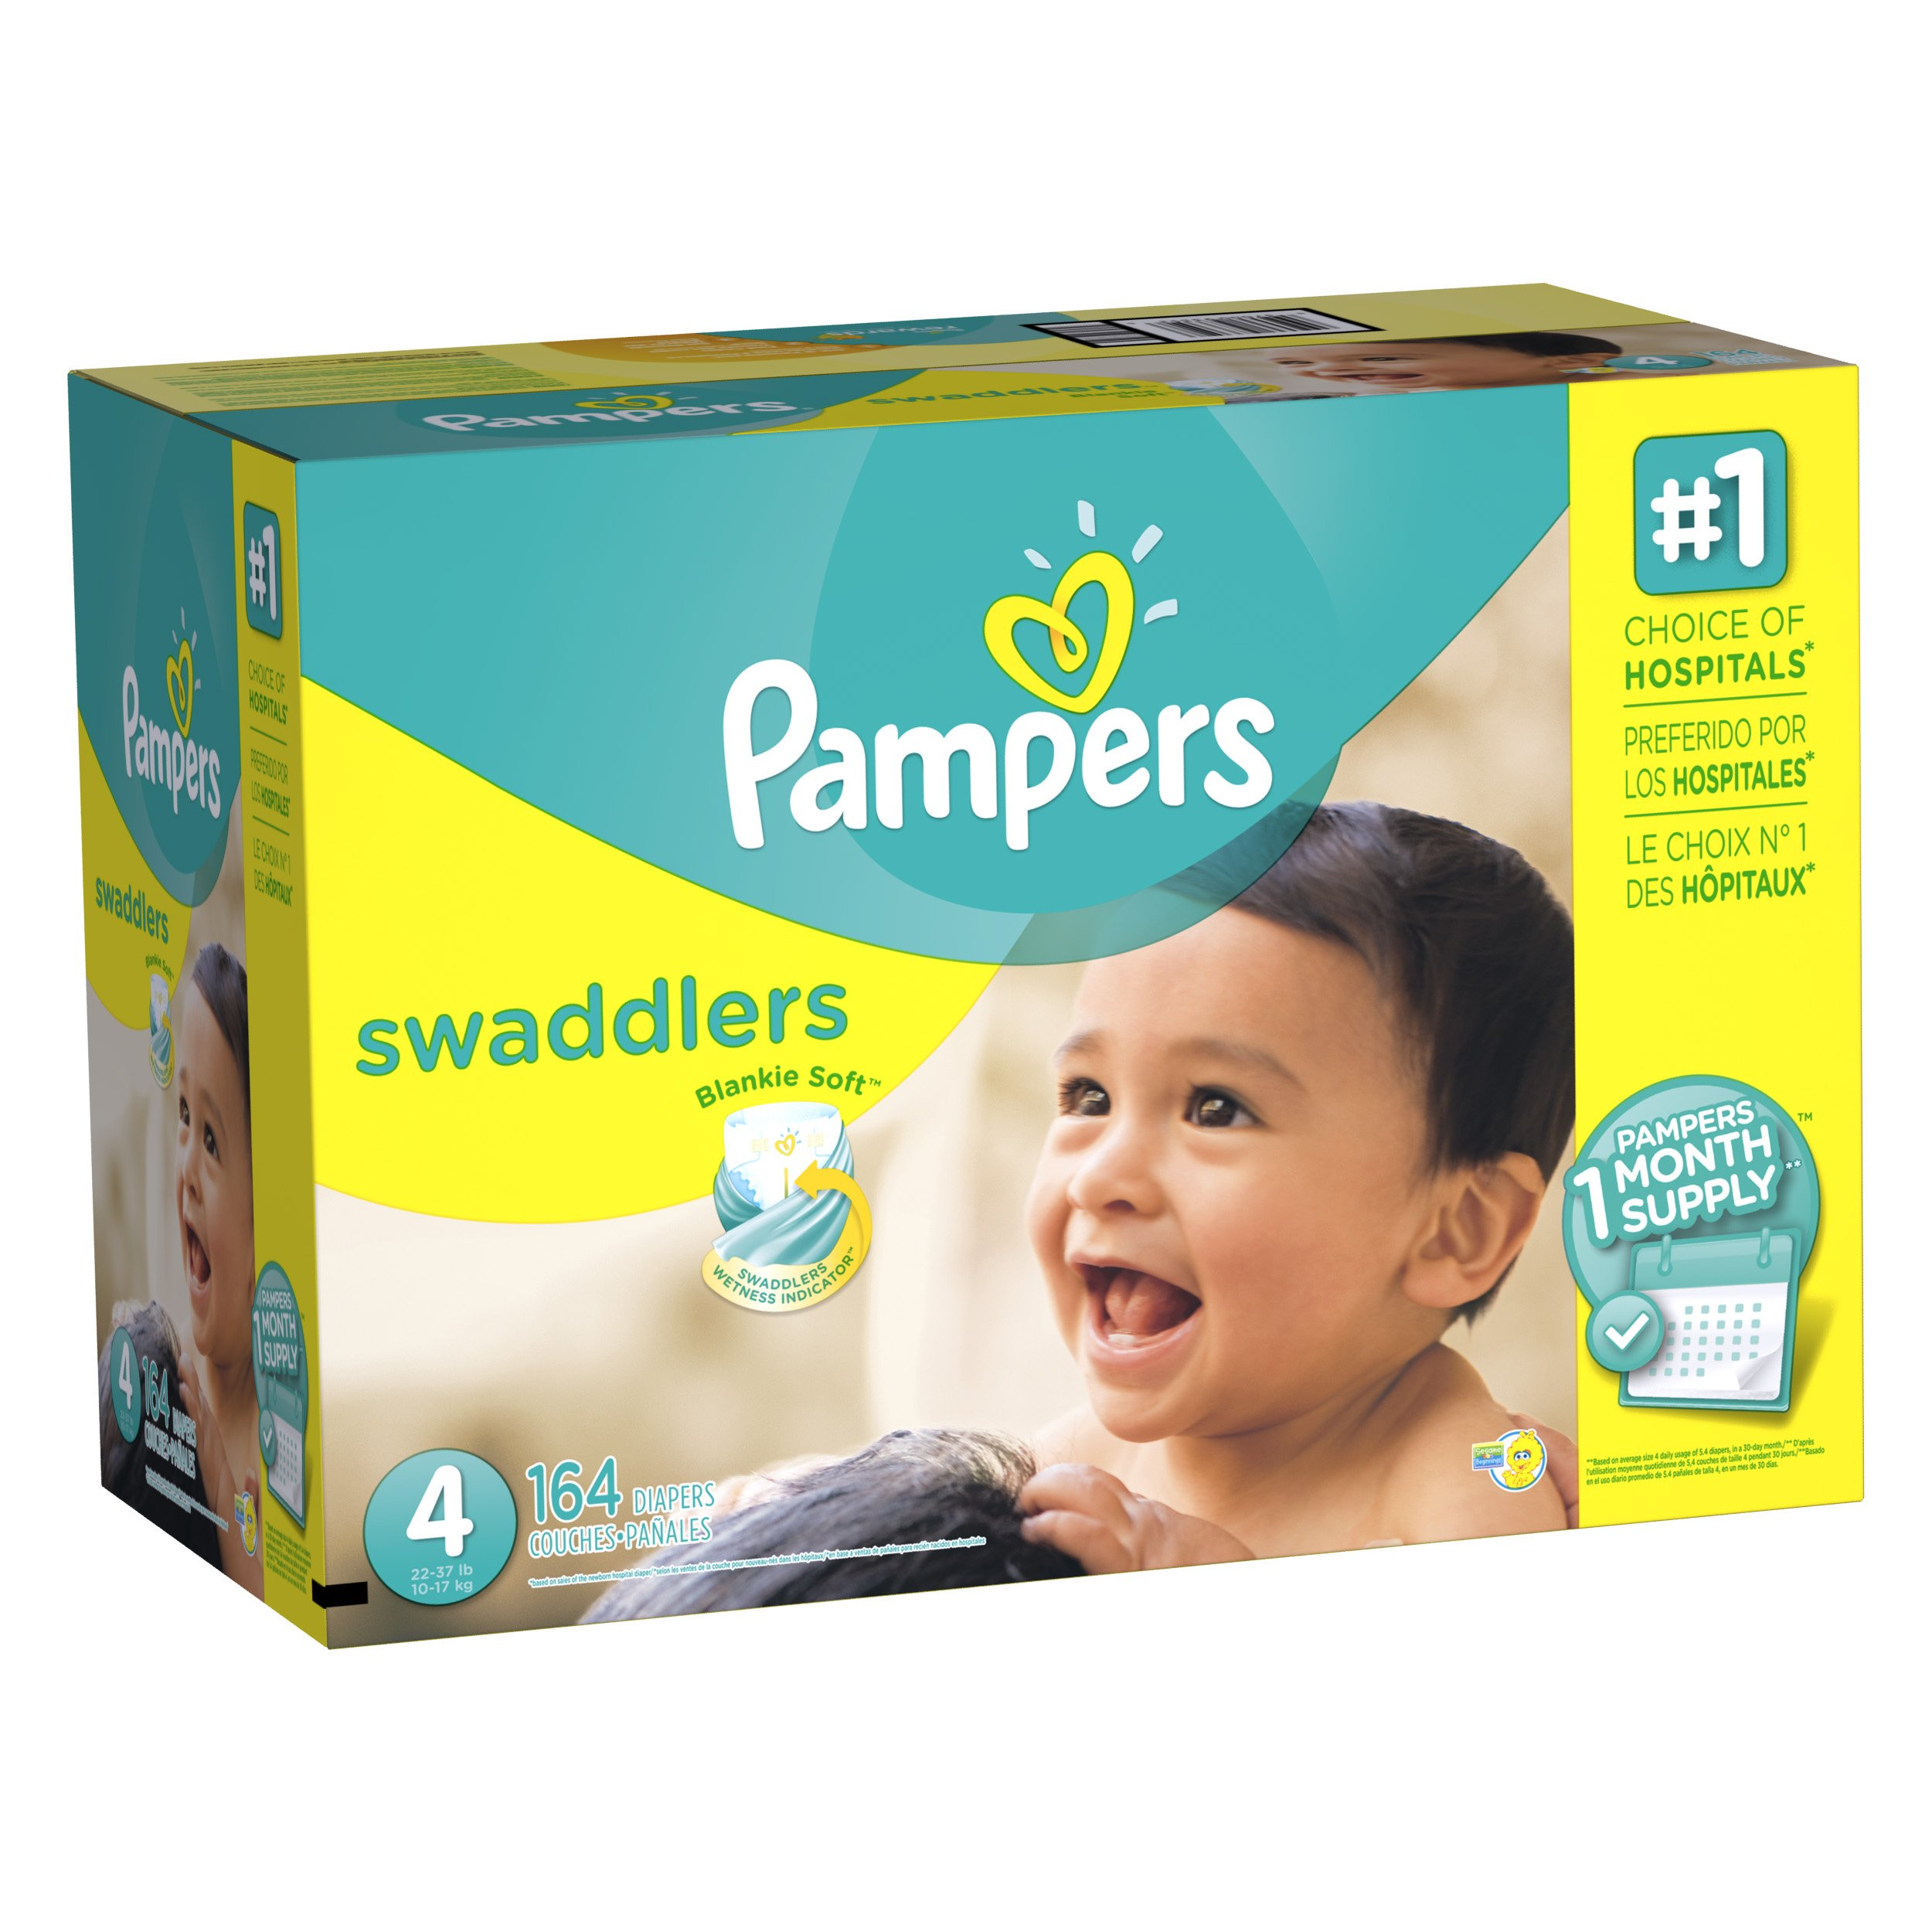 Pampers Swadlers Size 4 by Pampers